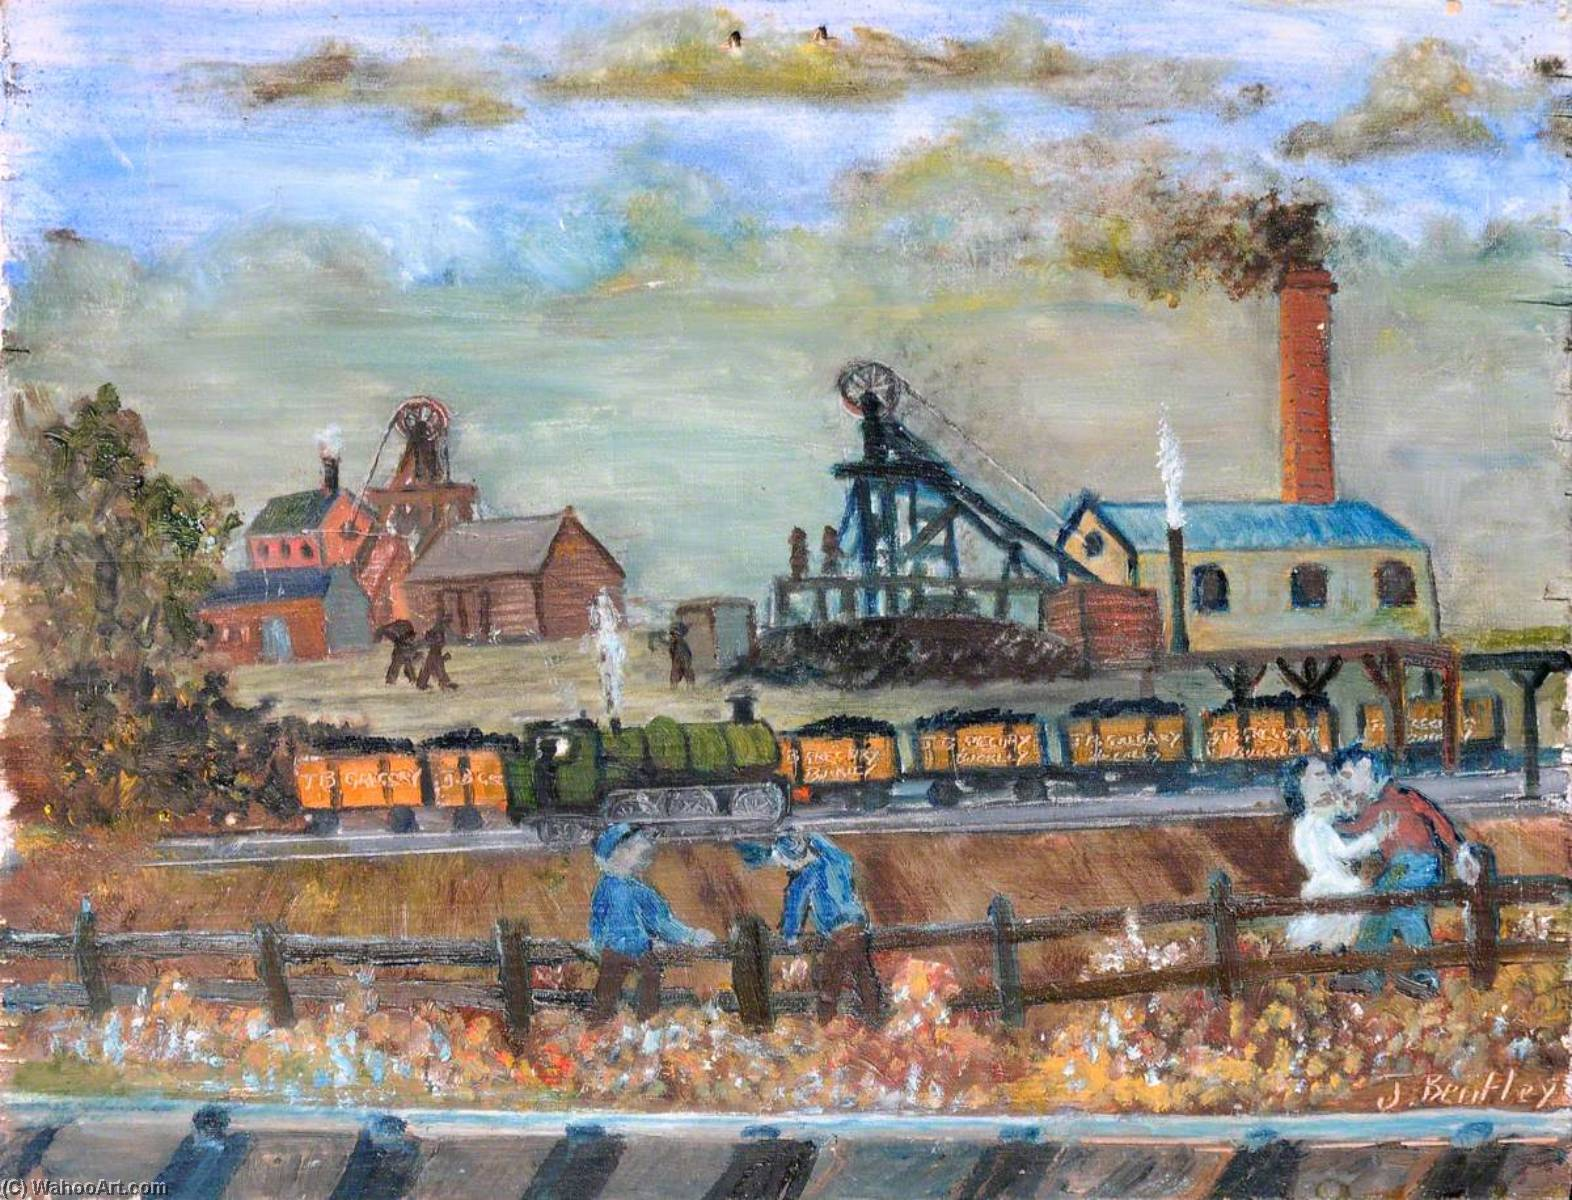 Work and Leisure, Gregory`s Mount Pleasant Colliery, Buckley, c.1880 by James Bentley | Art Reproduction | WahooArt.com